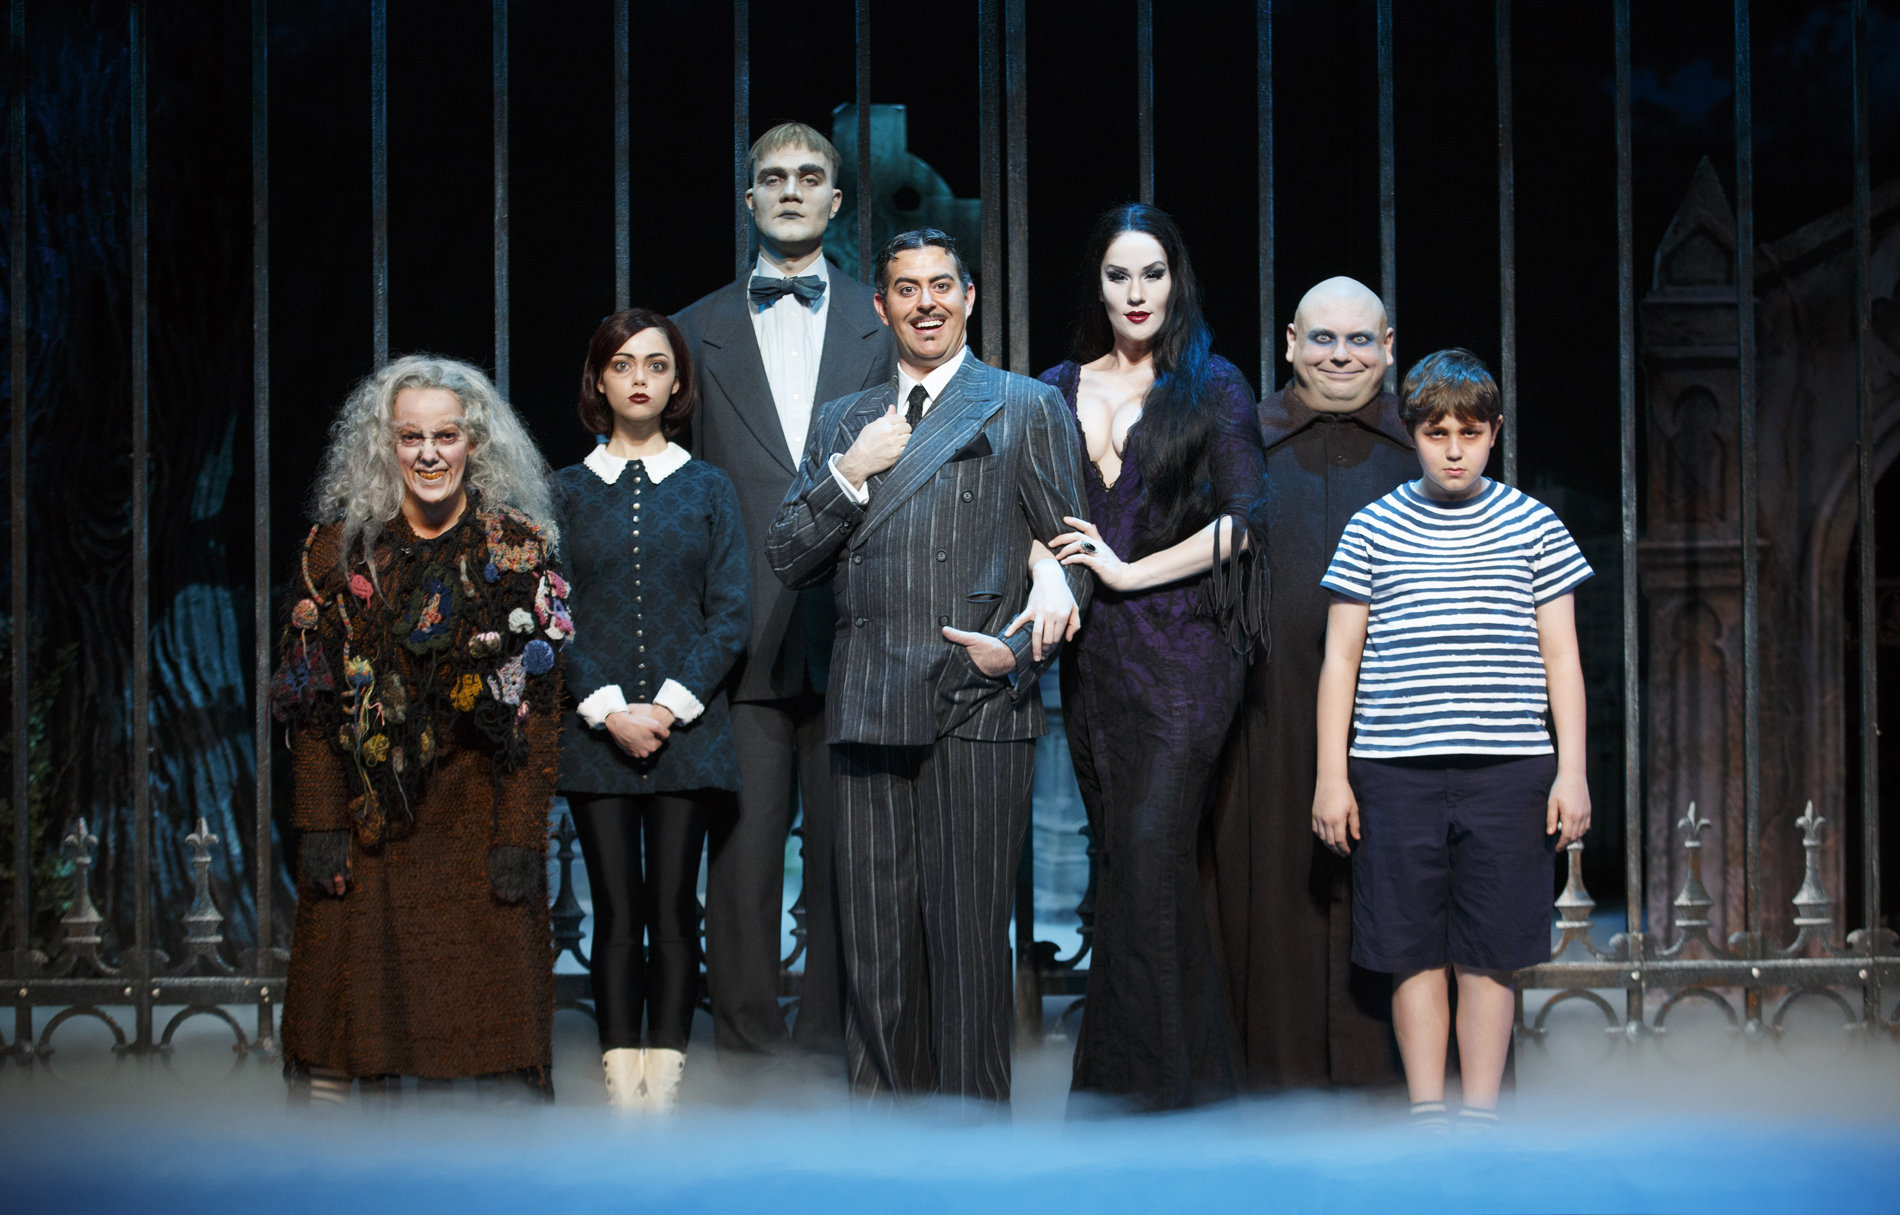 The Addams Family On Stage Hd Wallpapers